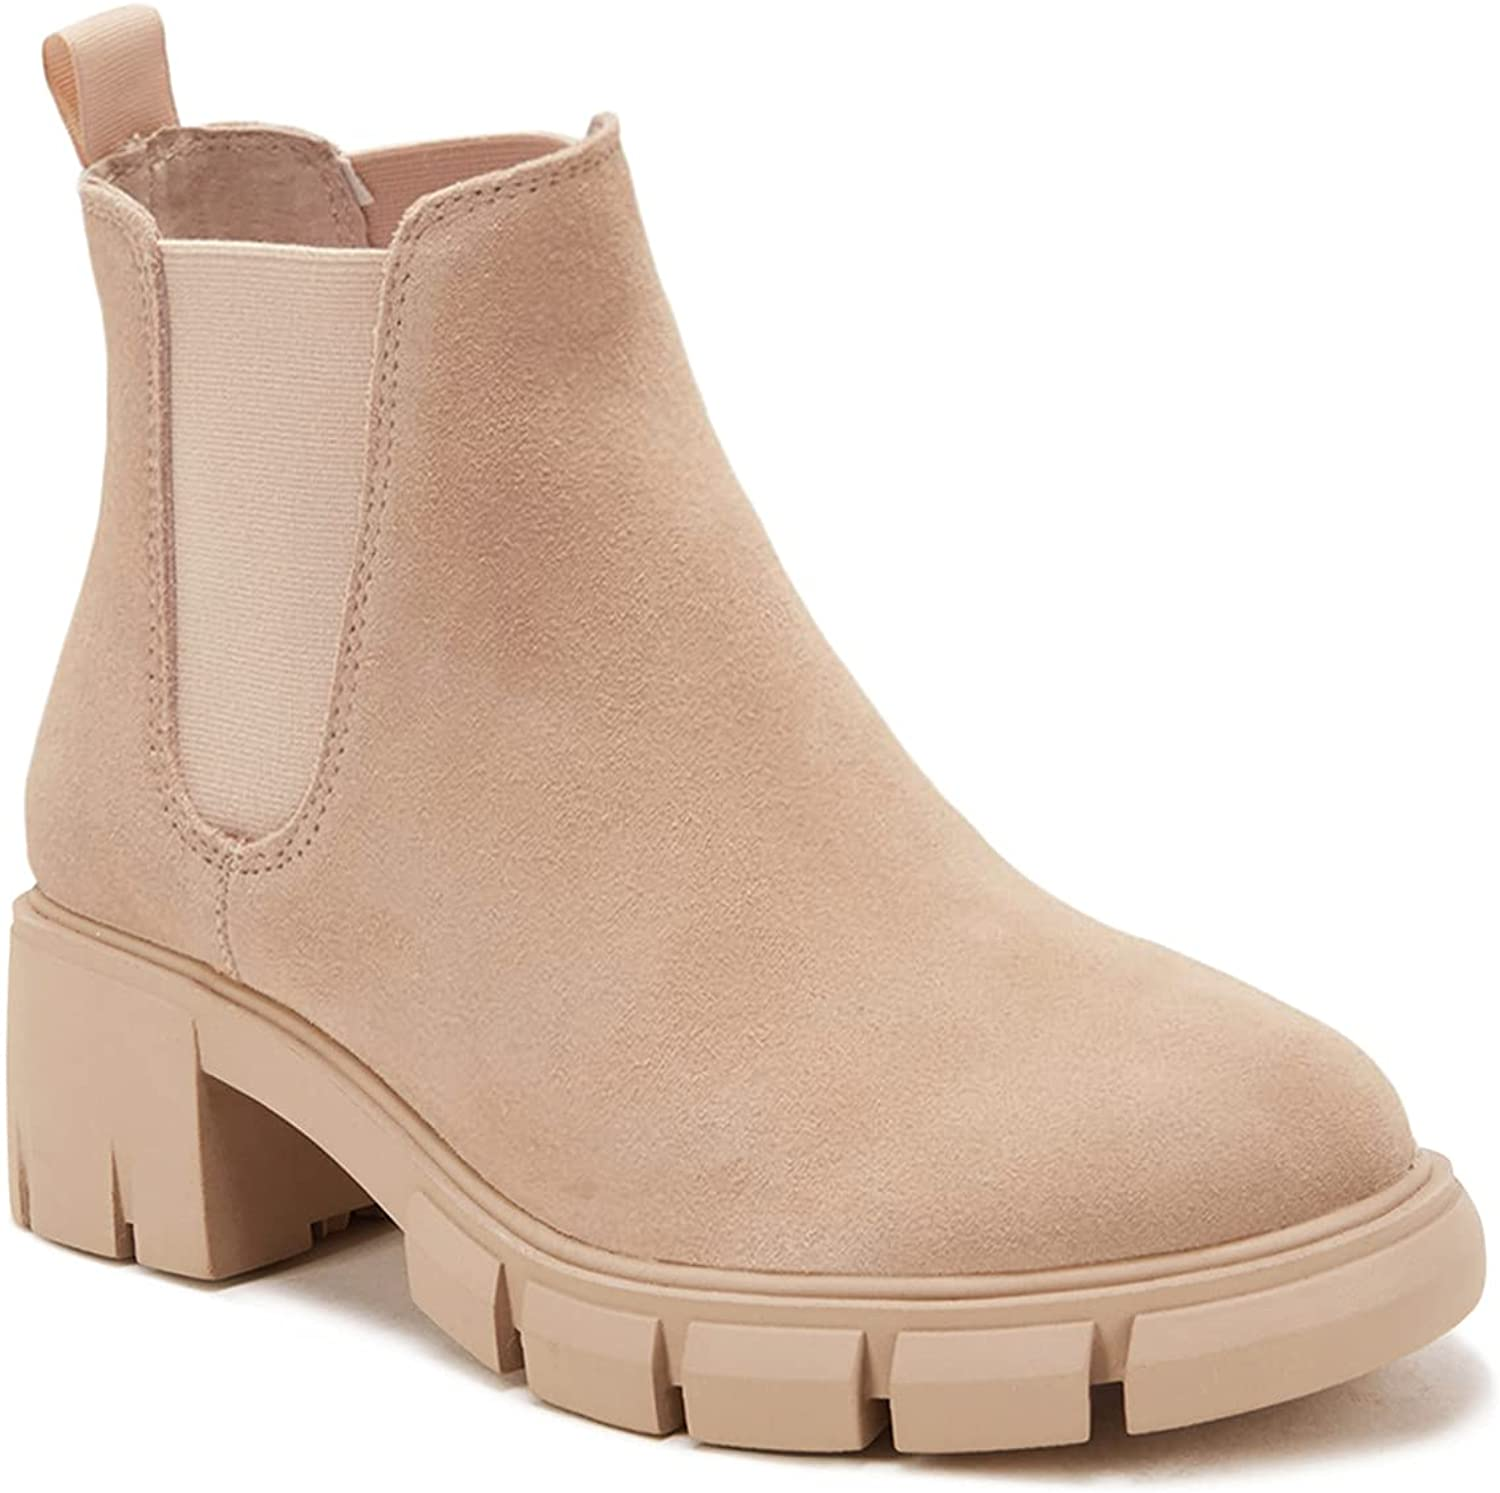 Womens Lug Sole Platform Ankle Booties Chelsea Slip on Chunky Block Heel Leather Combat Boots